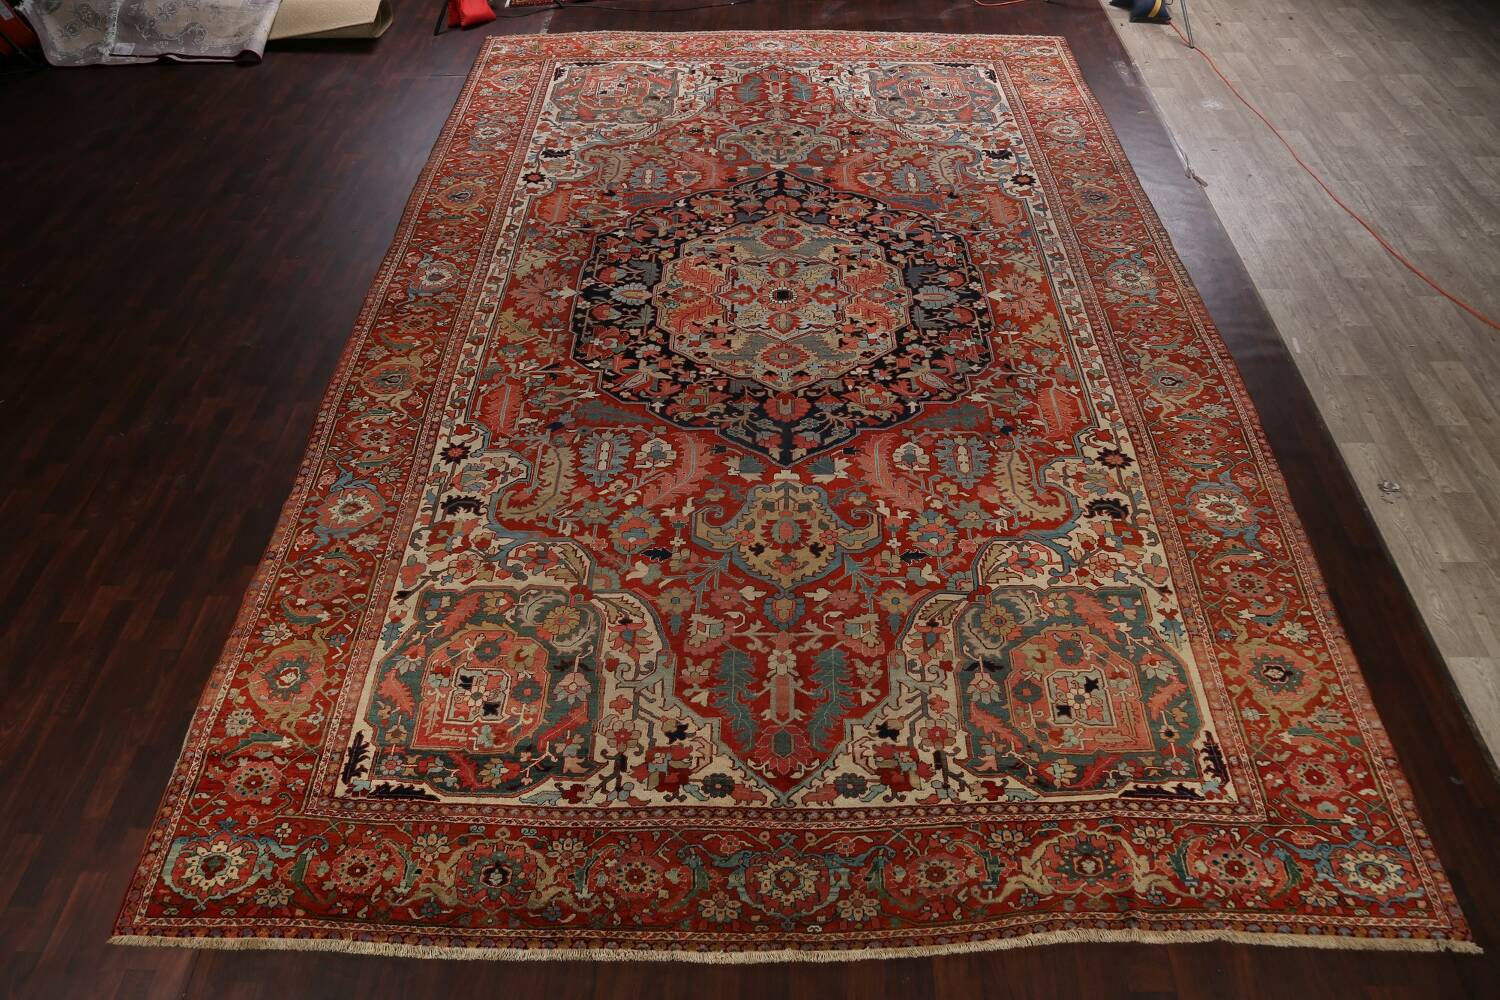 Antique Heriz Serapi Vegetable Dye Persian Area Rug 12x19 image 2